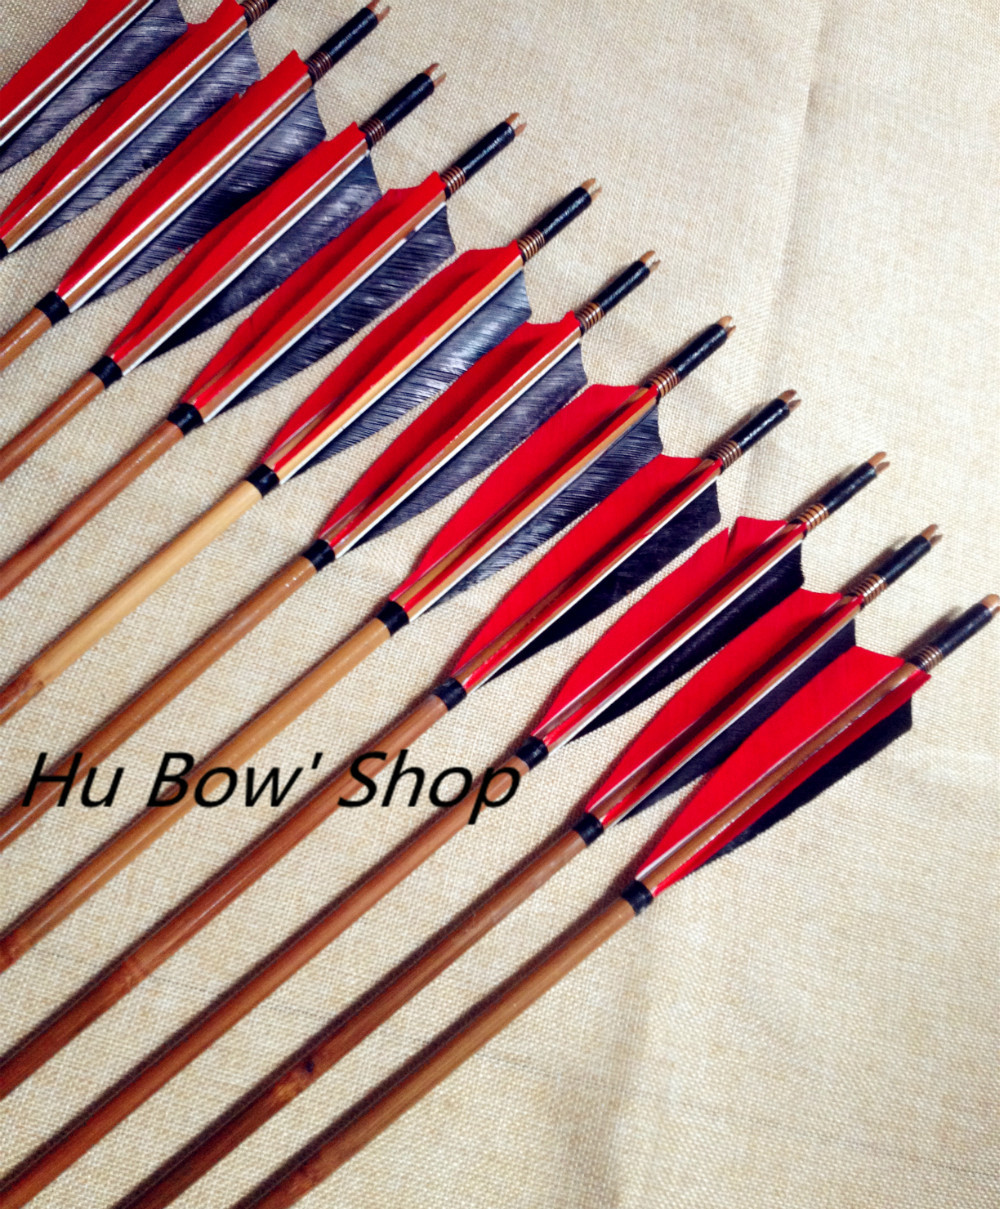 12PCS 32 bamboo arrows traditional archery arrows turkey feather steel points natural material12PCS 32 bamboo arrows traditional archery arrows turkey feather steel points natural material